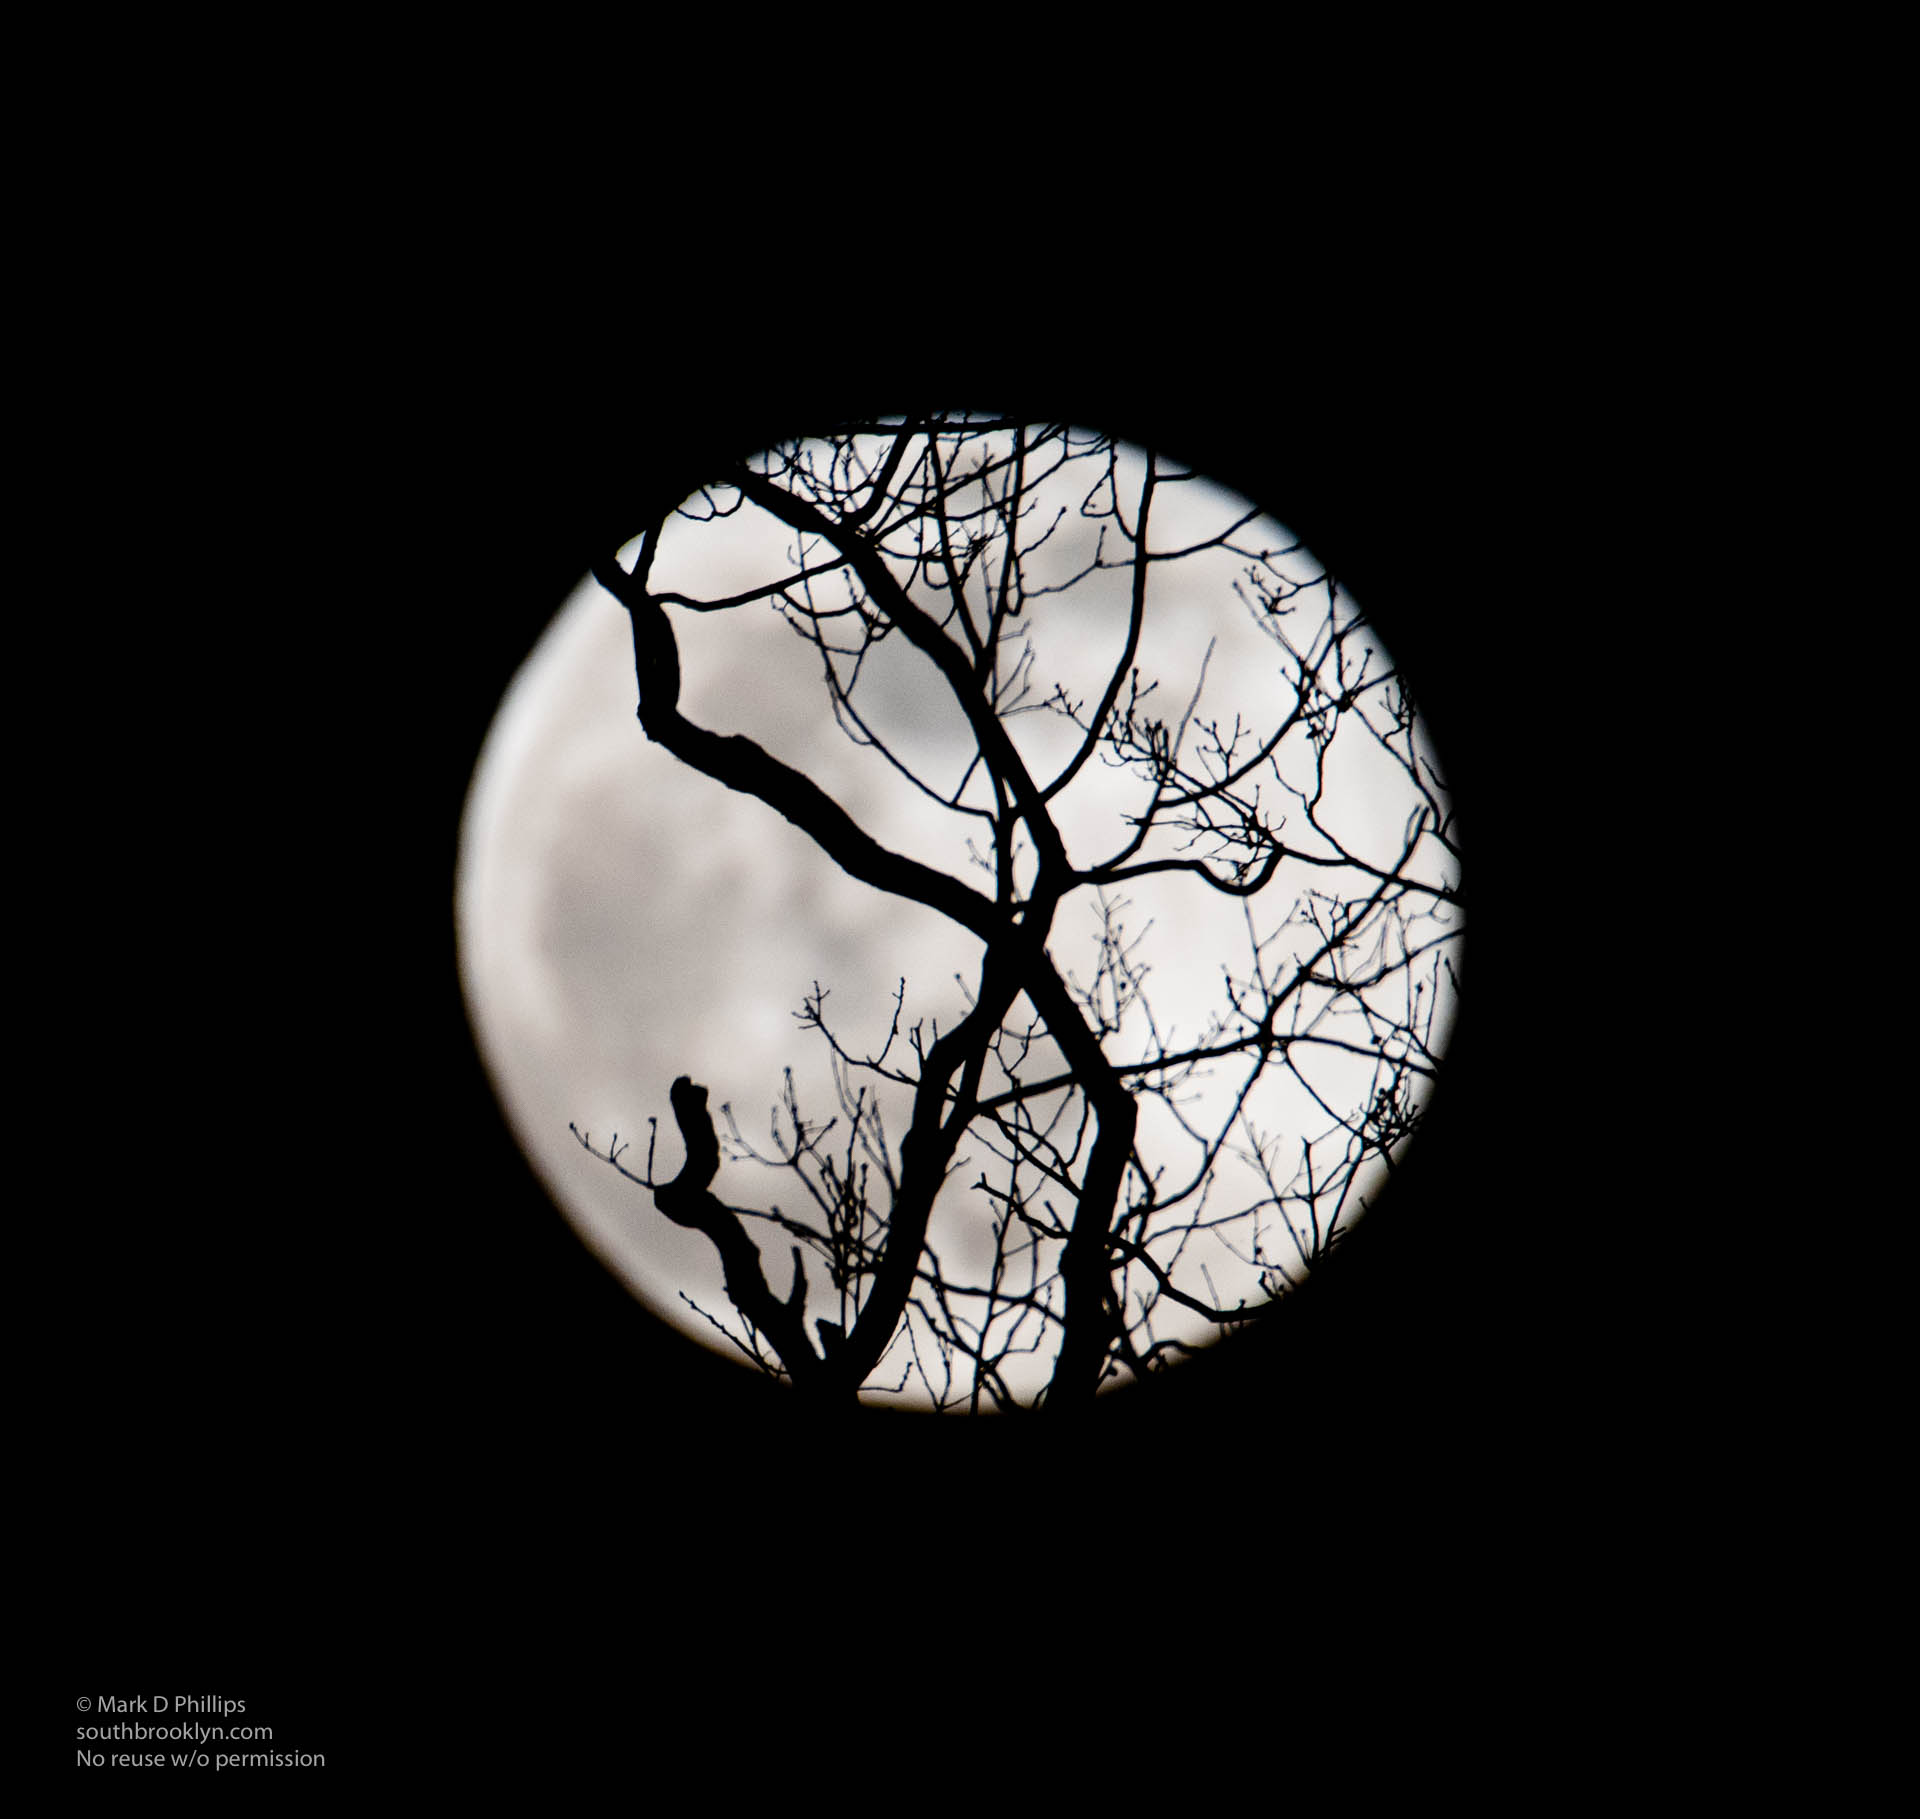 Super Moon on April 7, 2020, closest apogee of Moon in year.